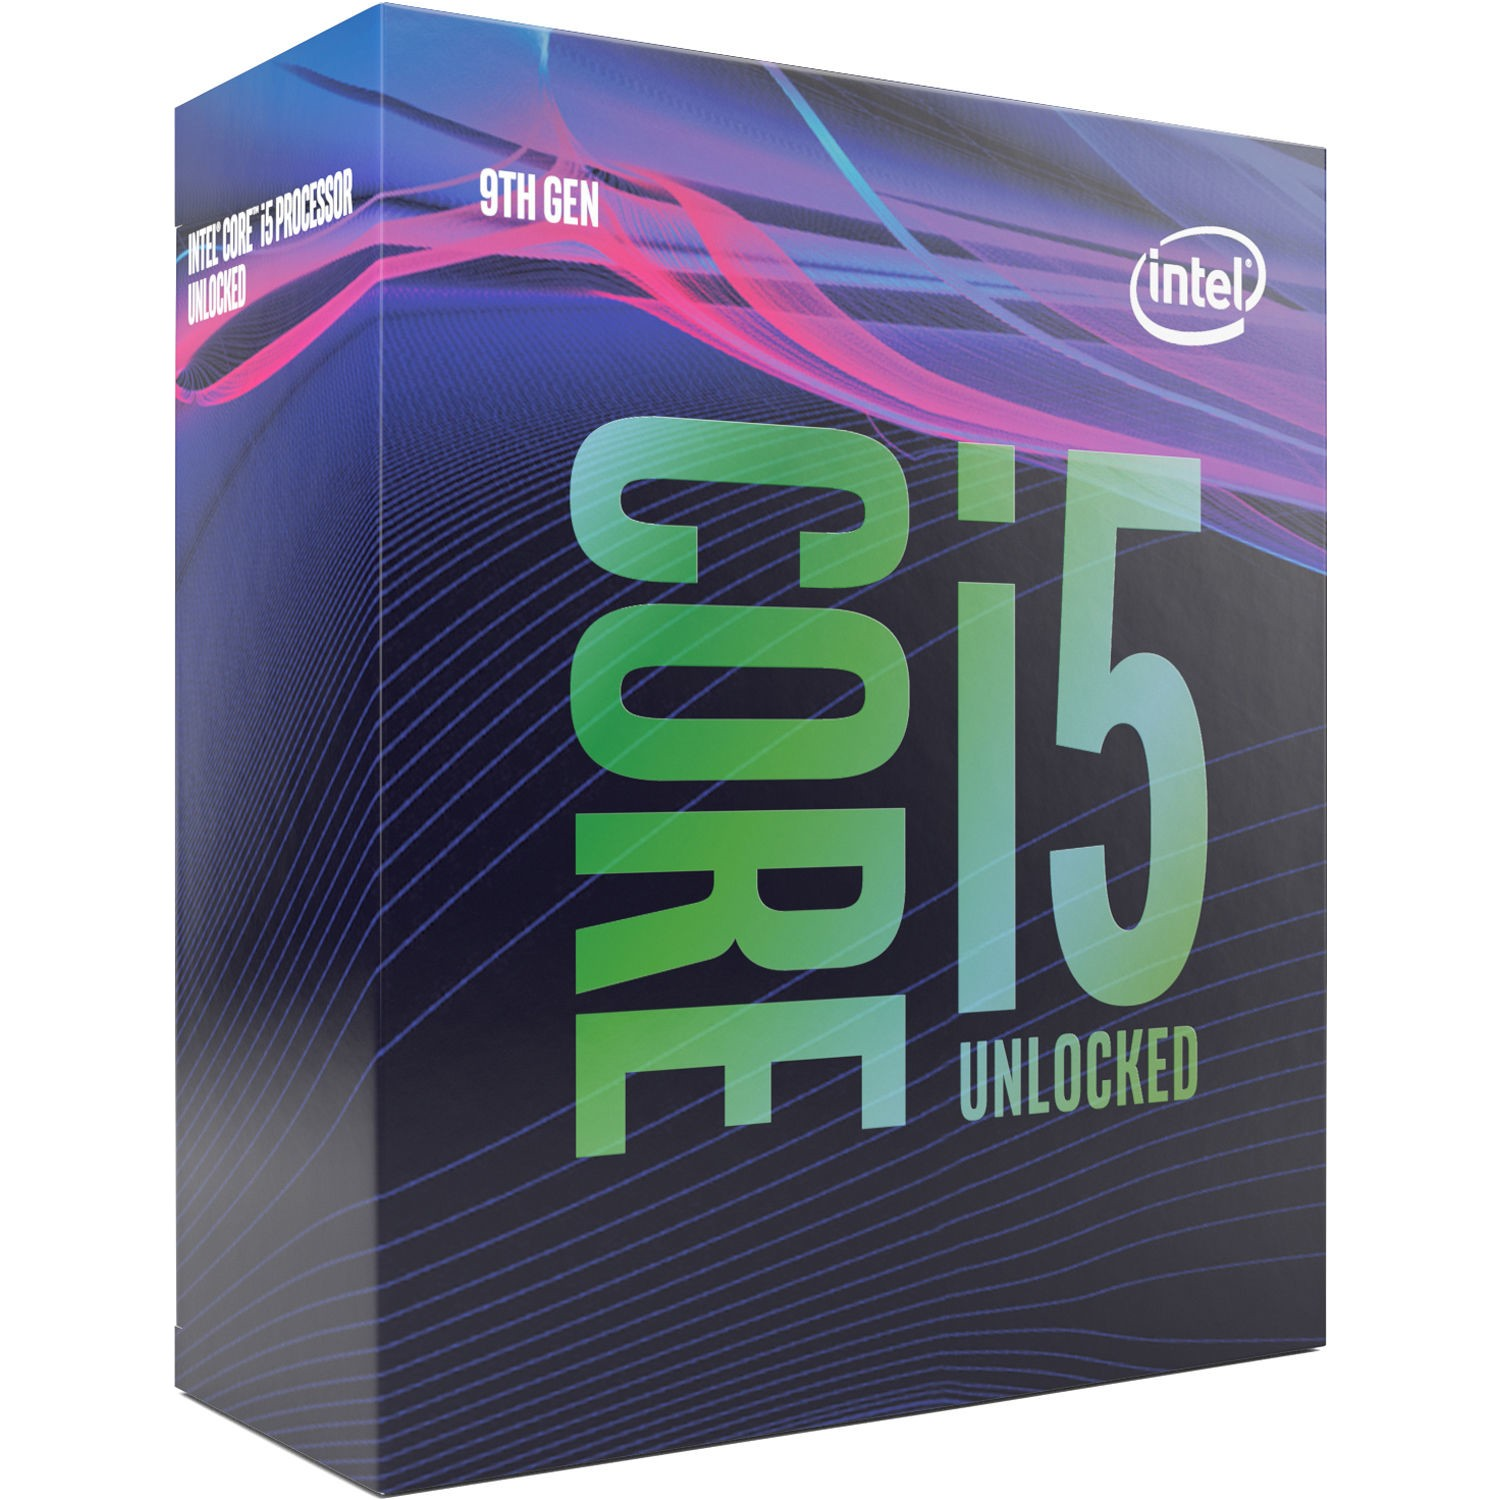 Intel Core i5 9600K 3.70GHz 9MB Cache LG...